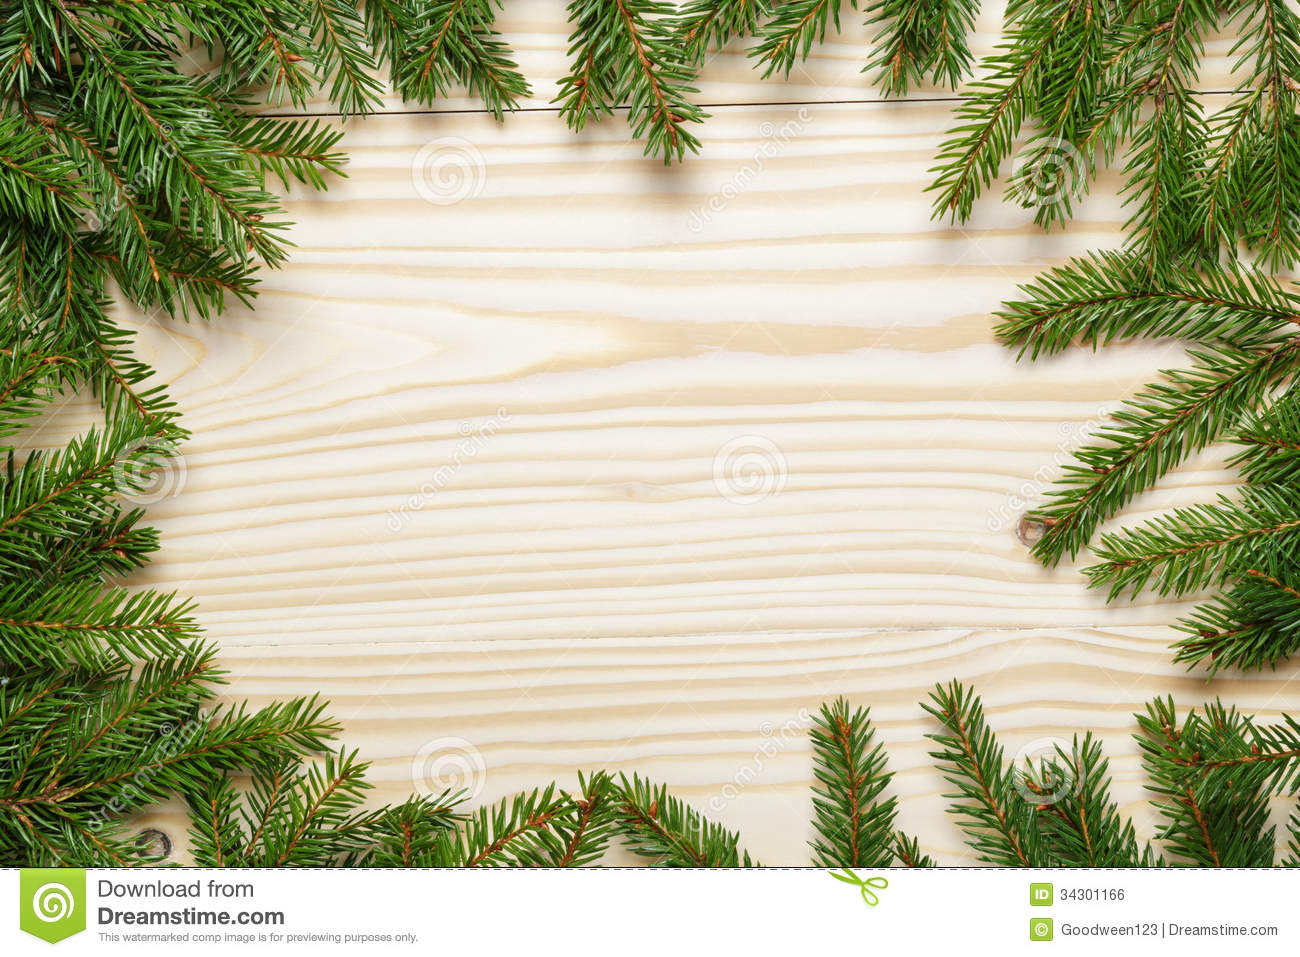 Christmas Background Images Free.Christmas Background From Fir Twigs On Wooden Table Stock